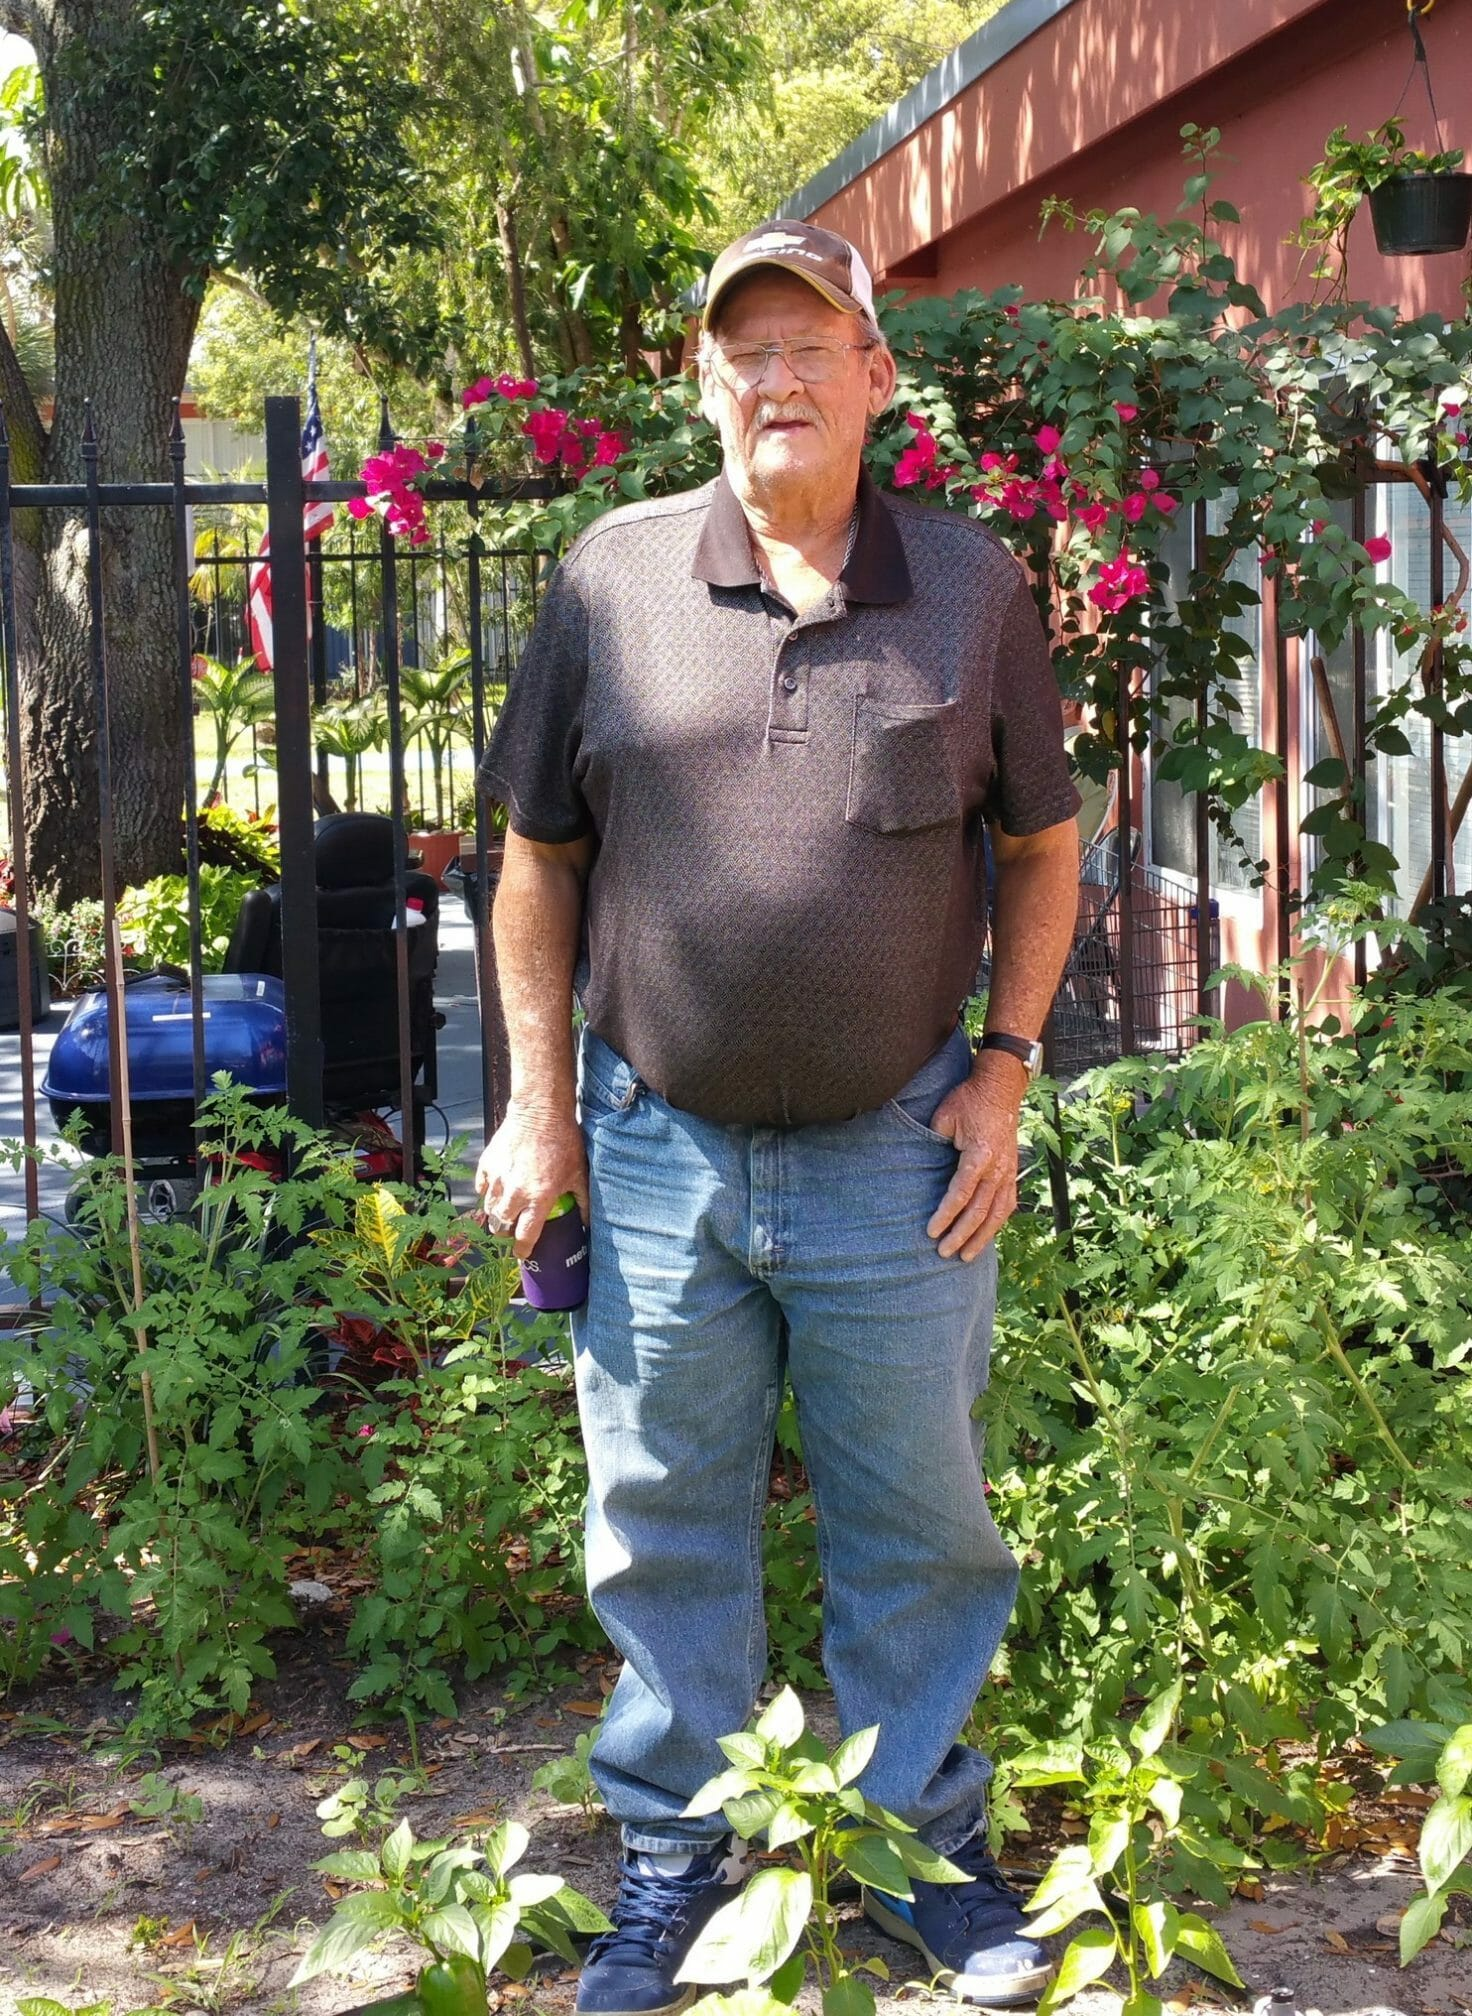 Allen, a resident of the Orlando Permanent Supportive Housing program at Pathlight HOME, in his garden